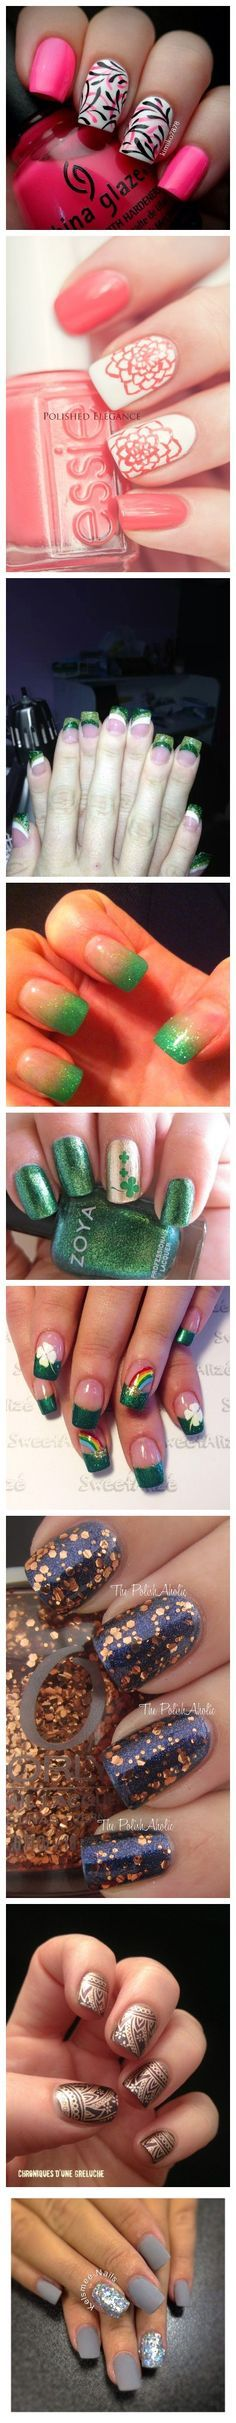 Nail Art Ideas and Designs #slimmingbodyshapers The key to positive body image go to slimmingbodyshapers.com for plus size shapewear and bras